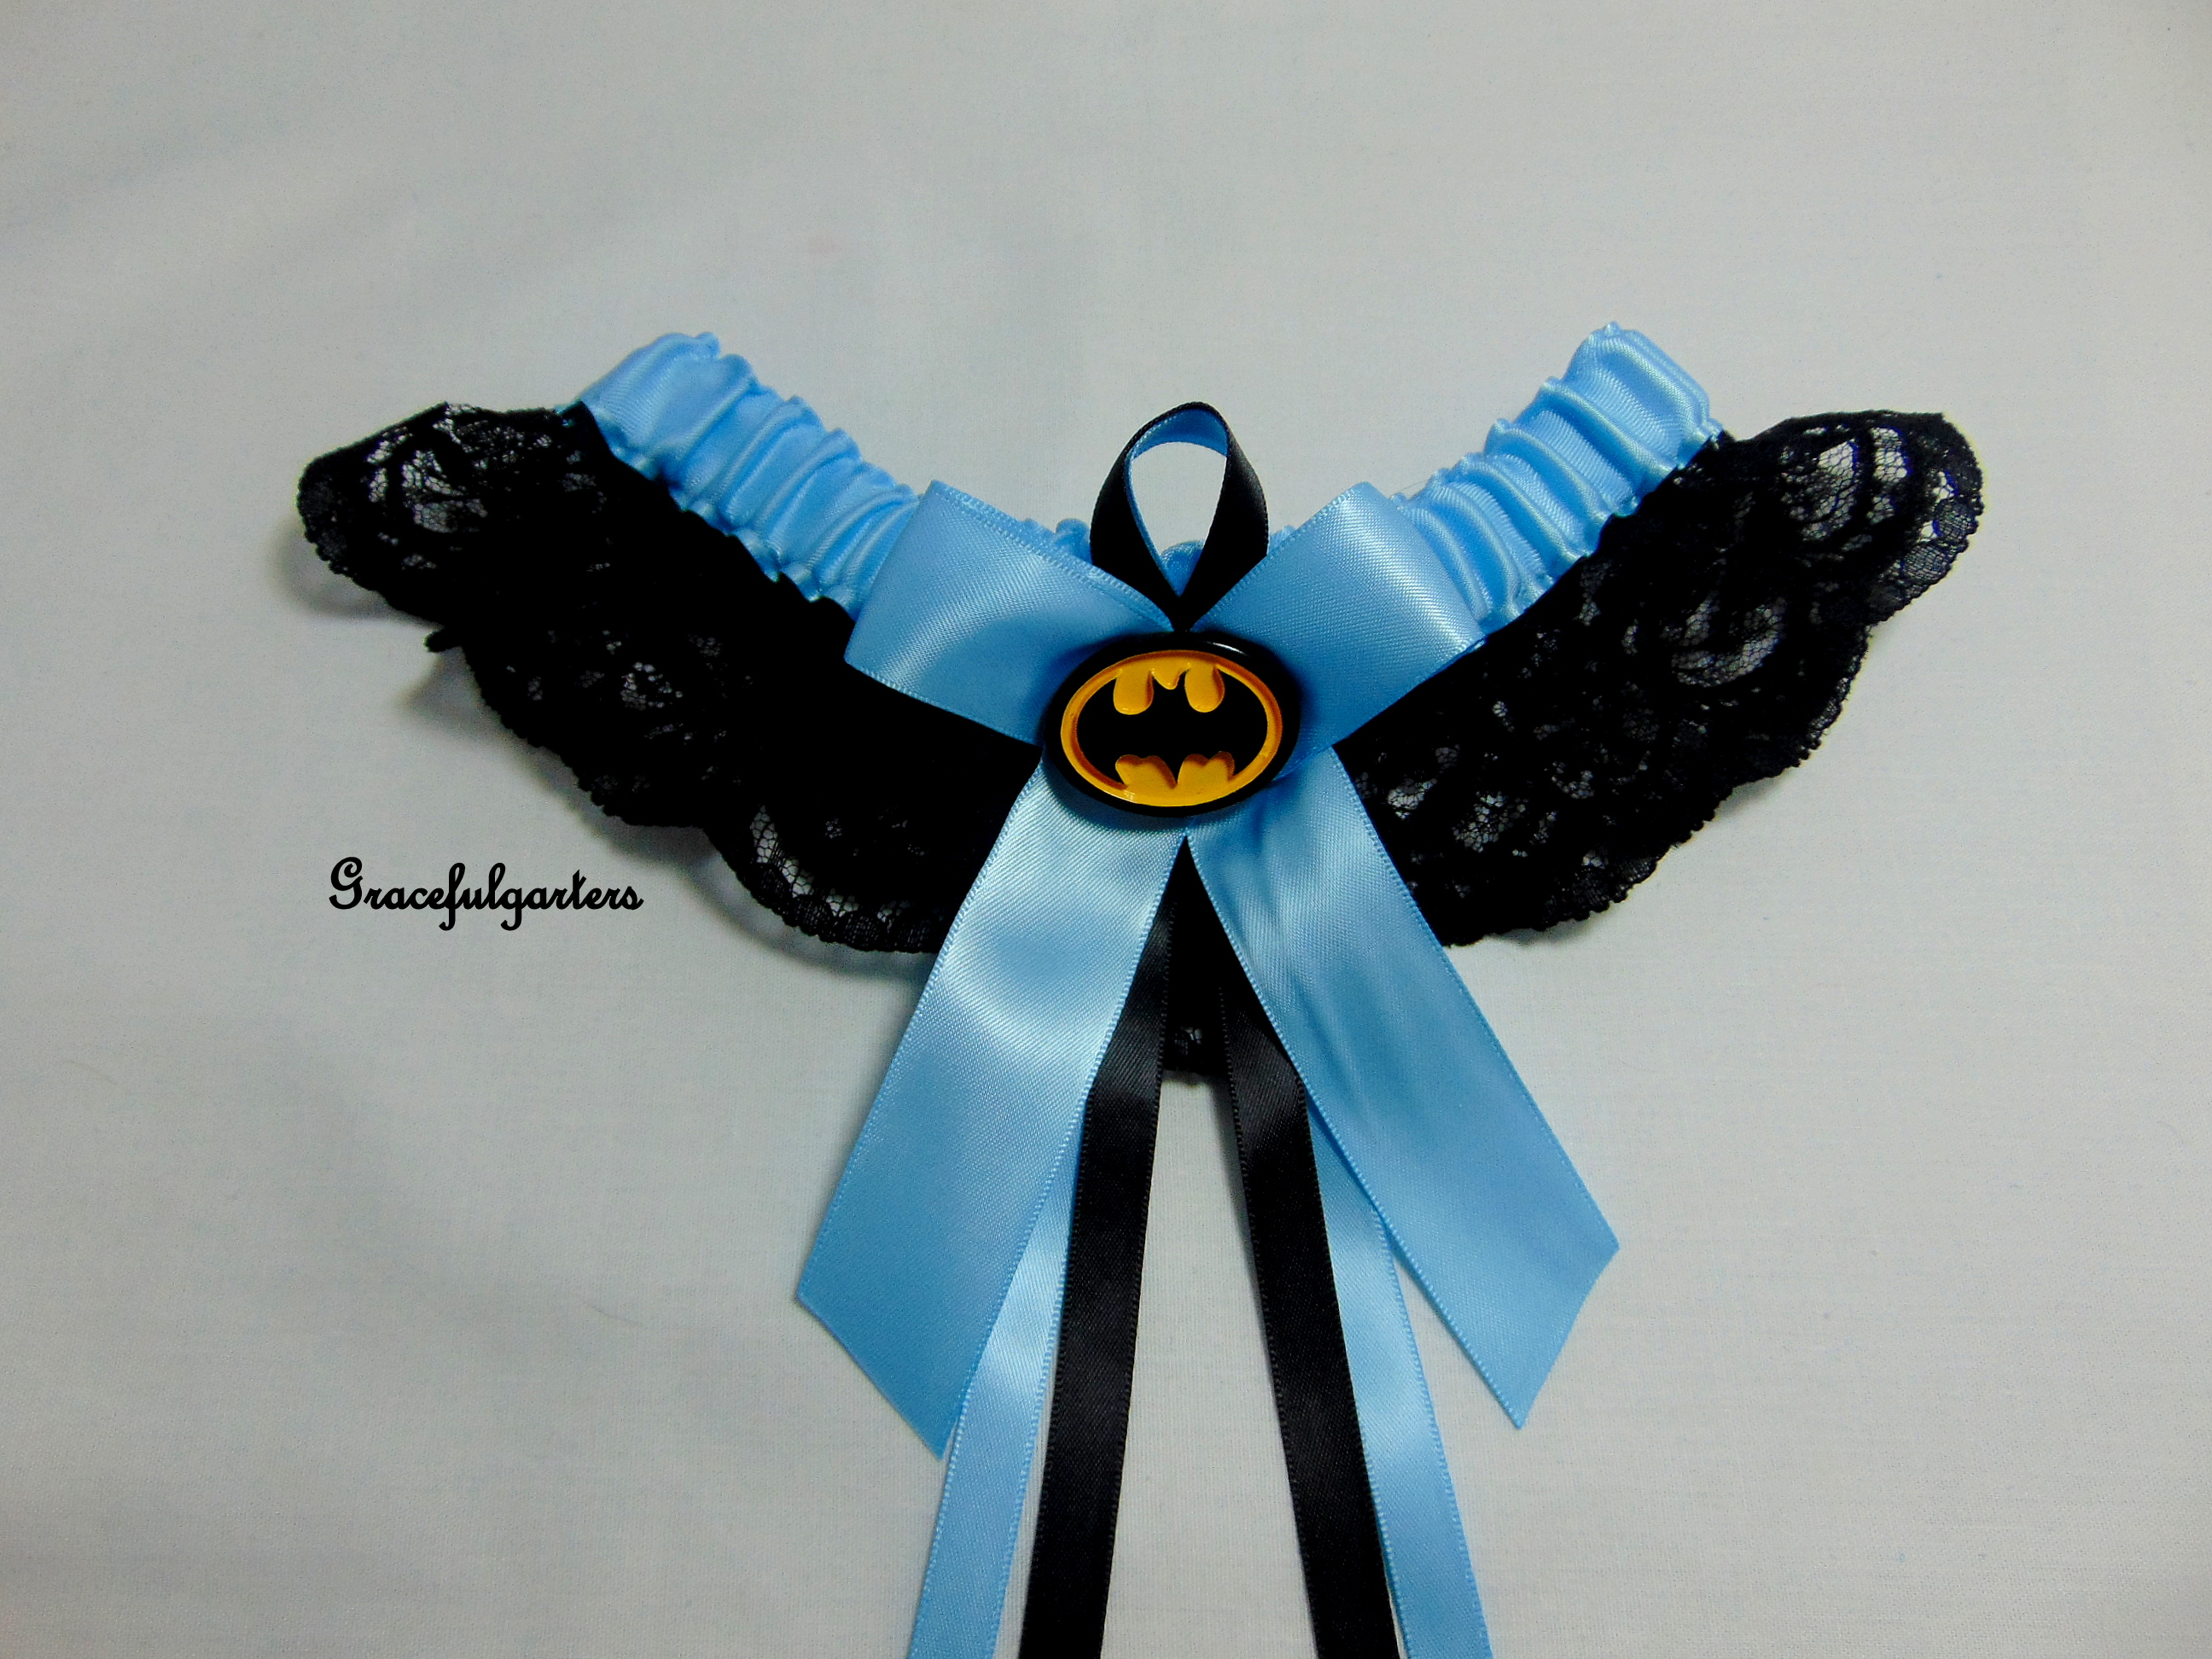 Batman Superhero Lace Bridal Wedding Garter